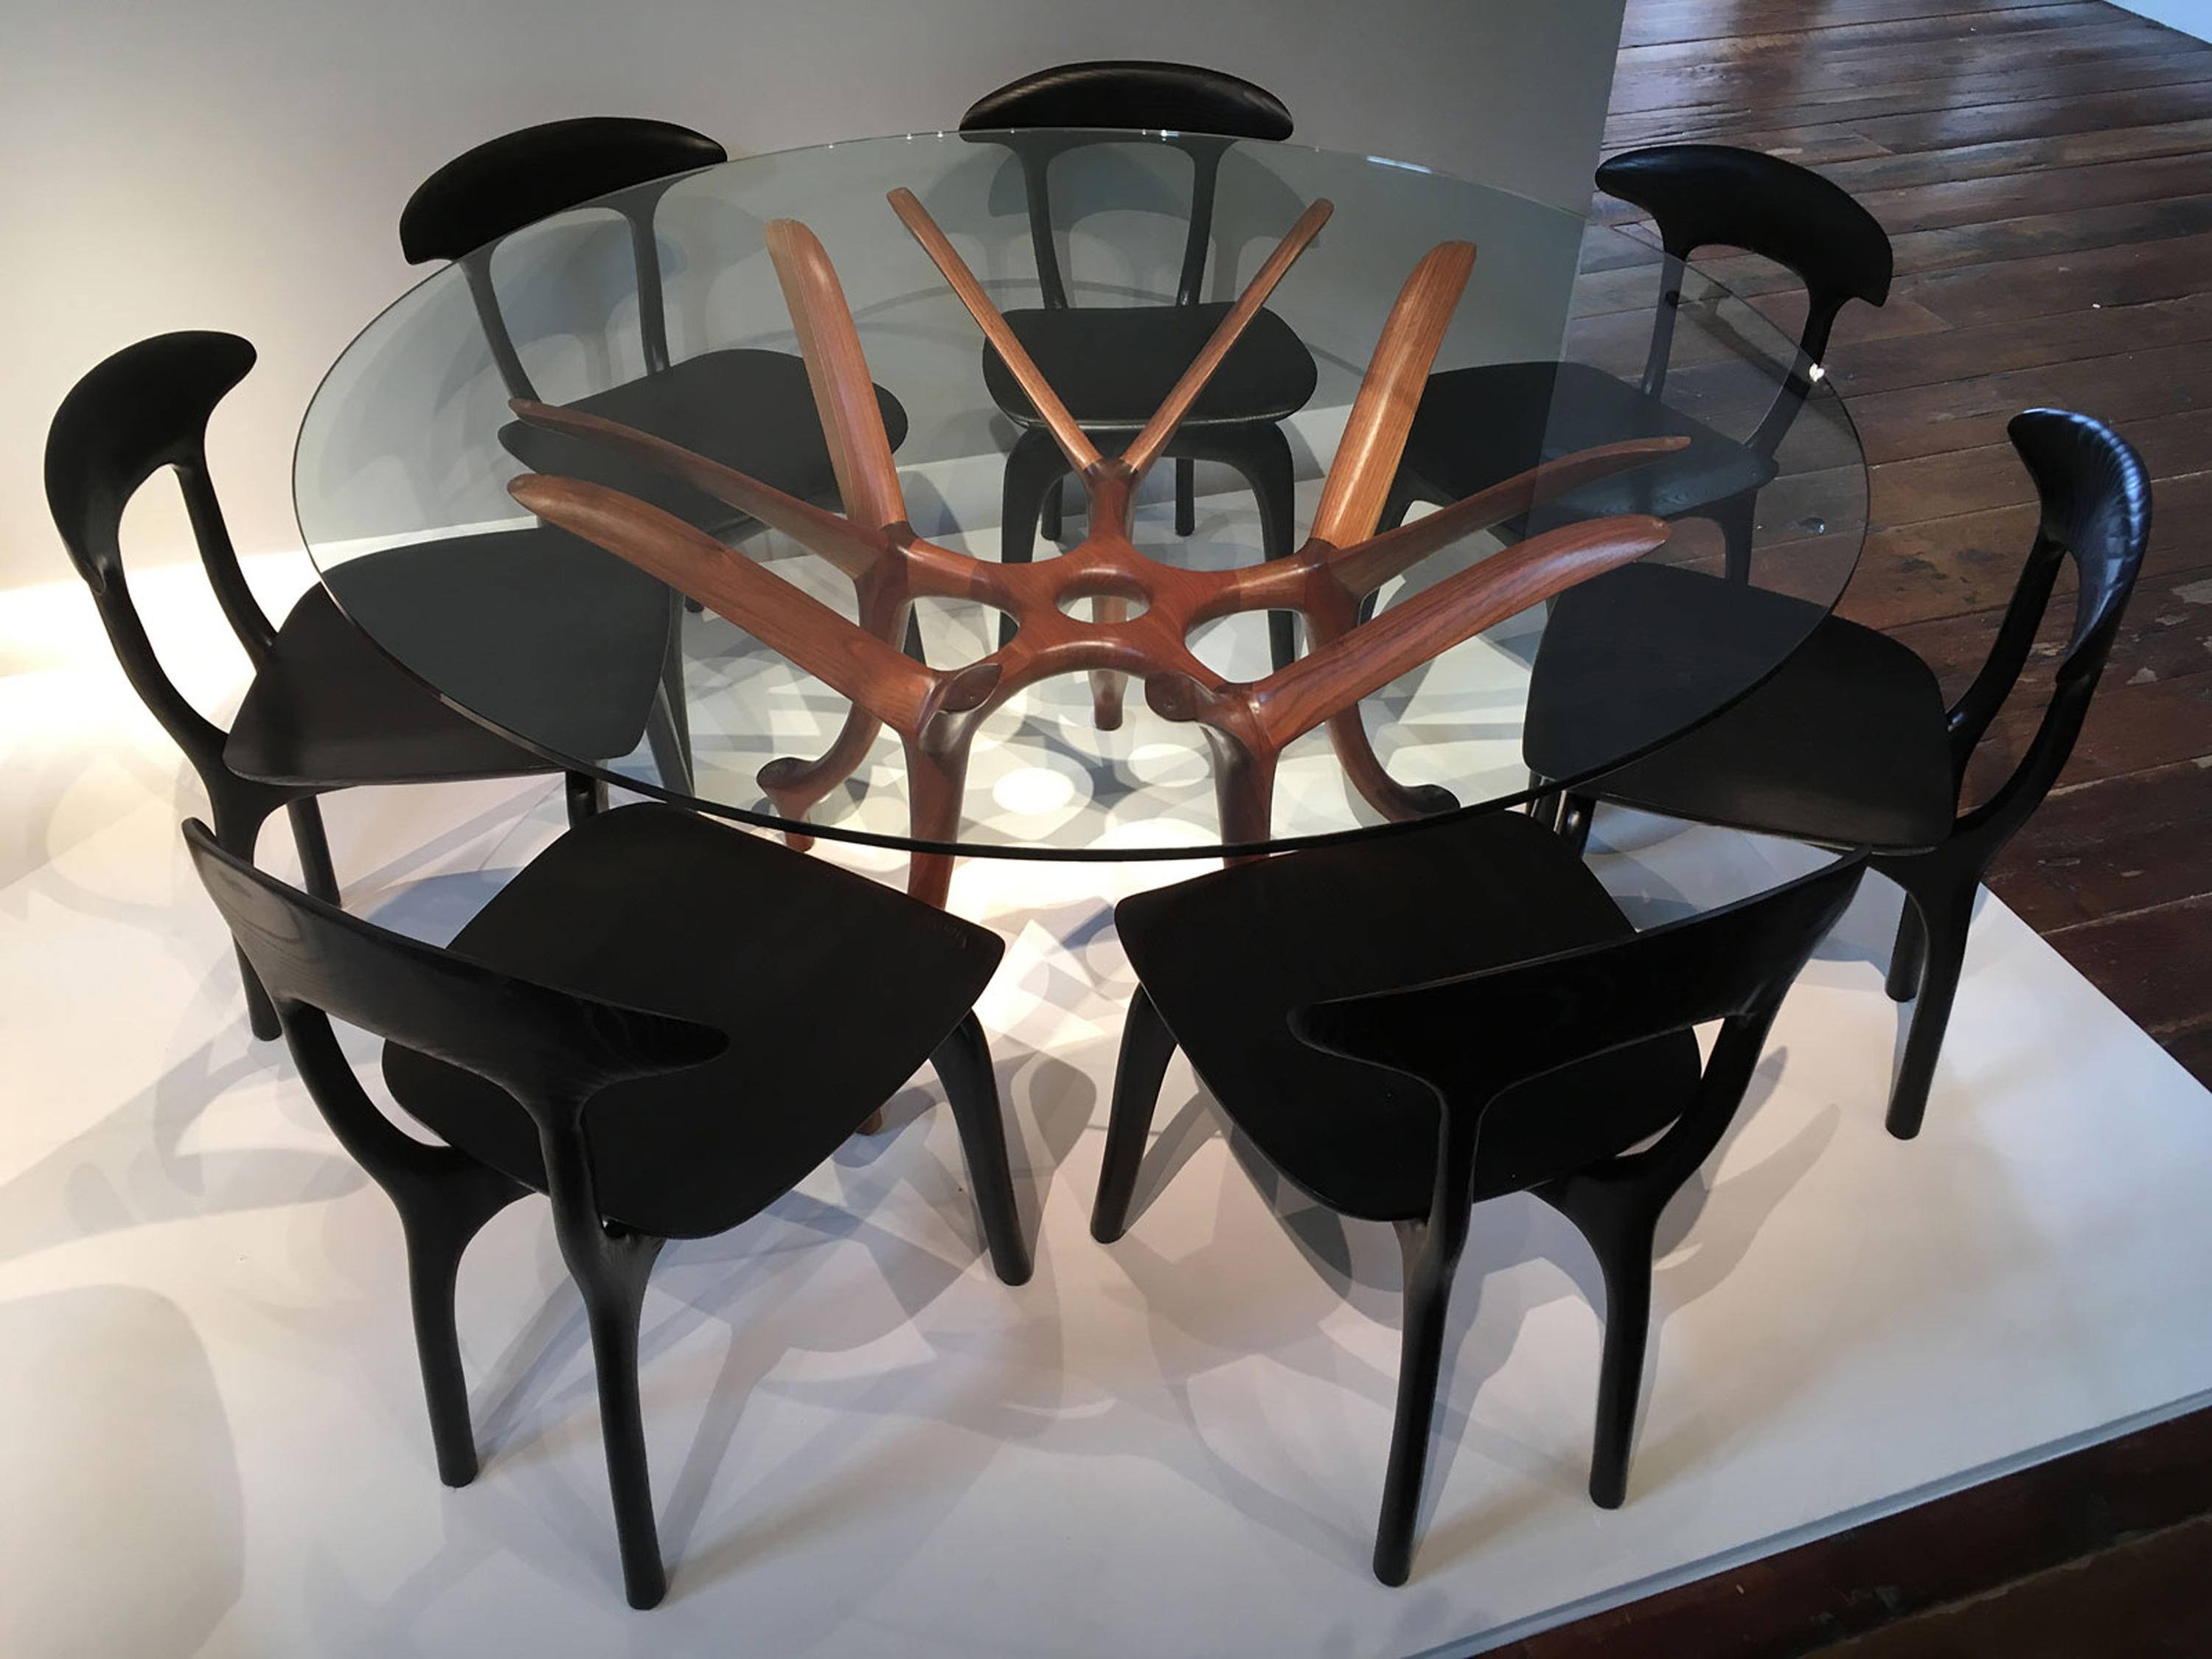 Malabar table restaurant tables from brian fireman design malabar table by brian fireman design geotapseo Image collections